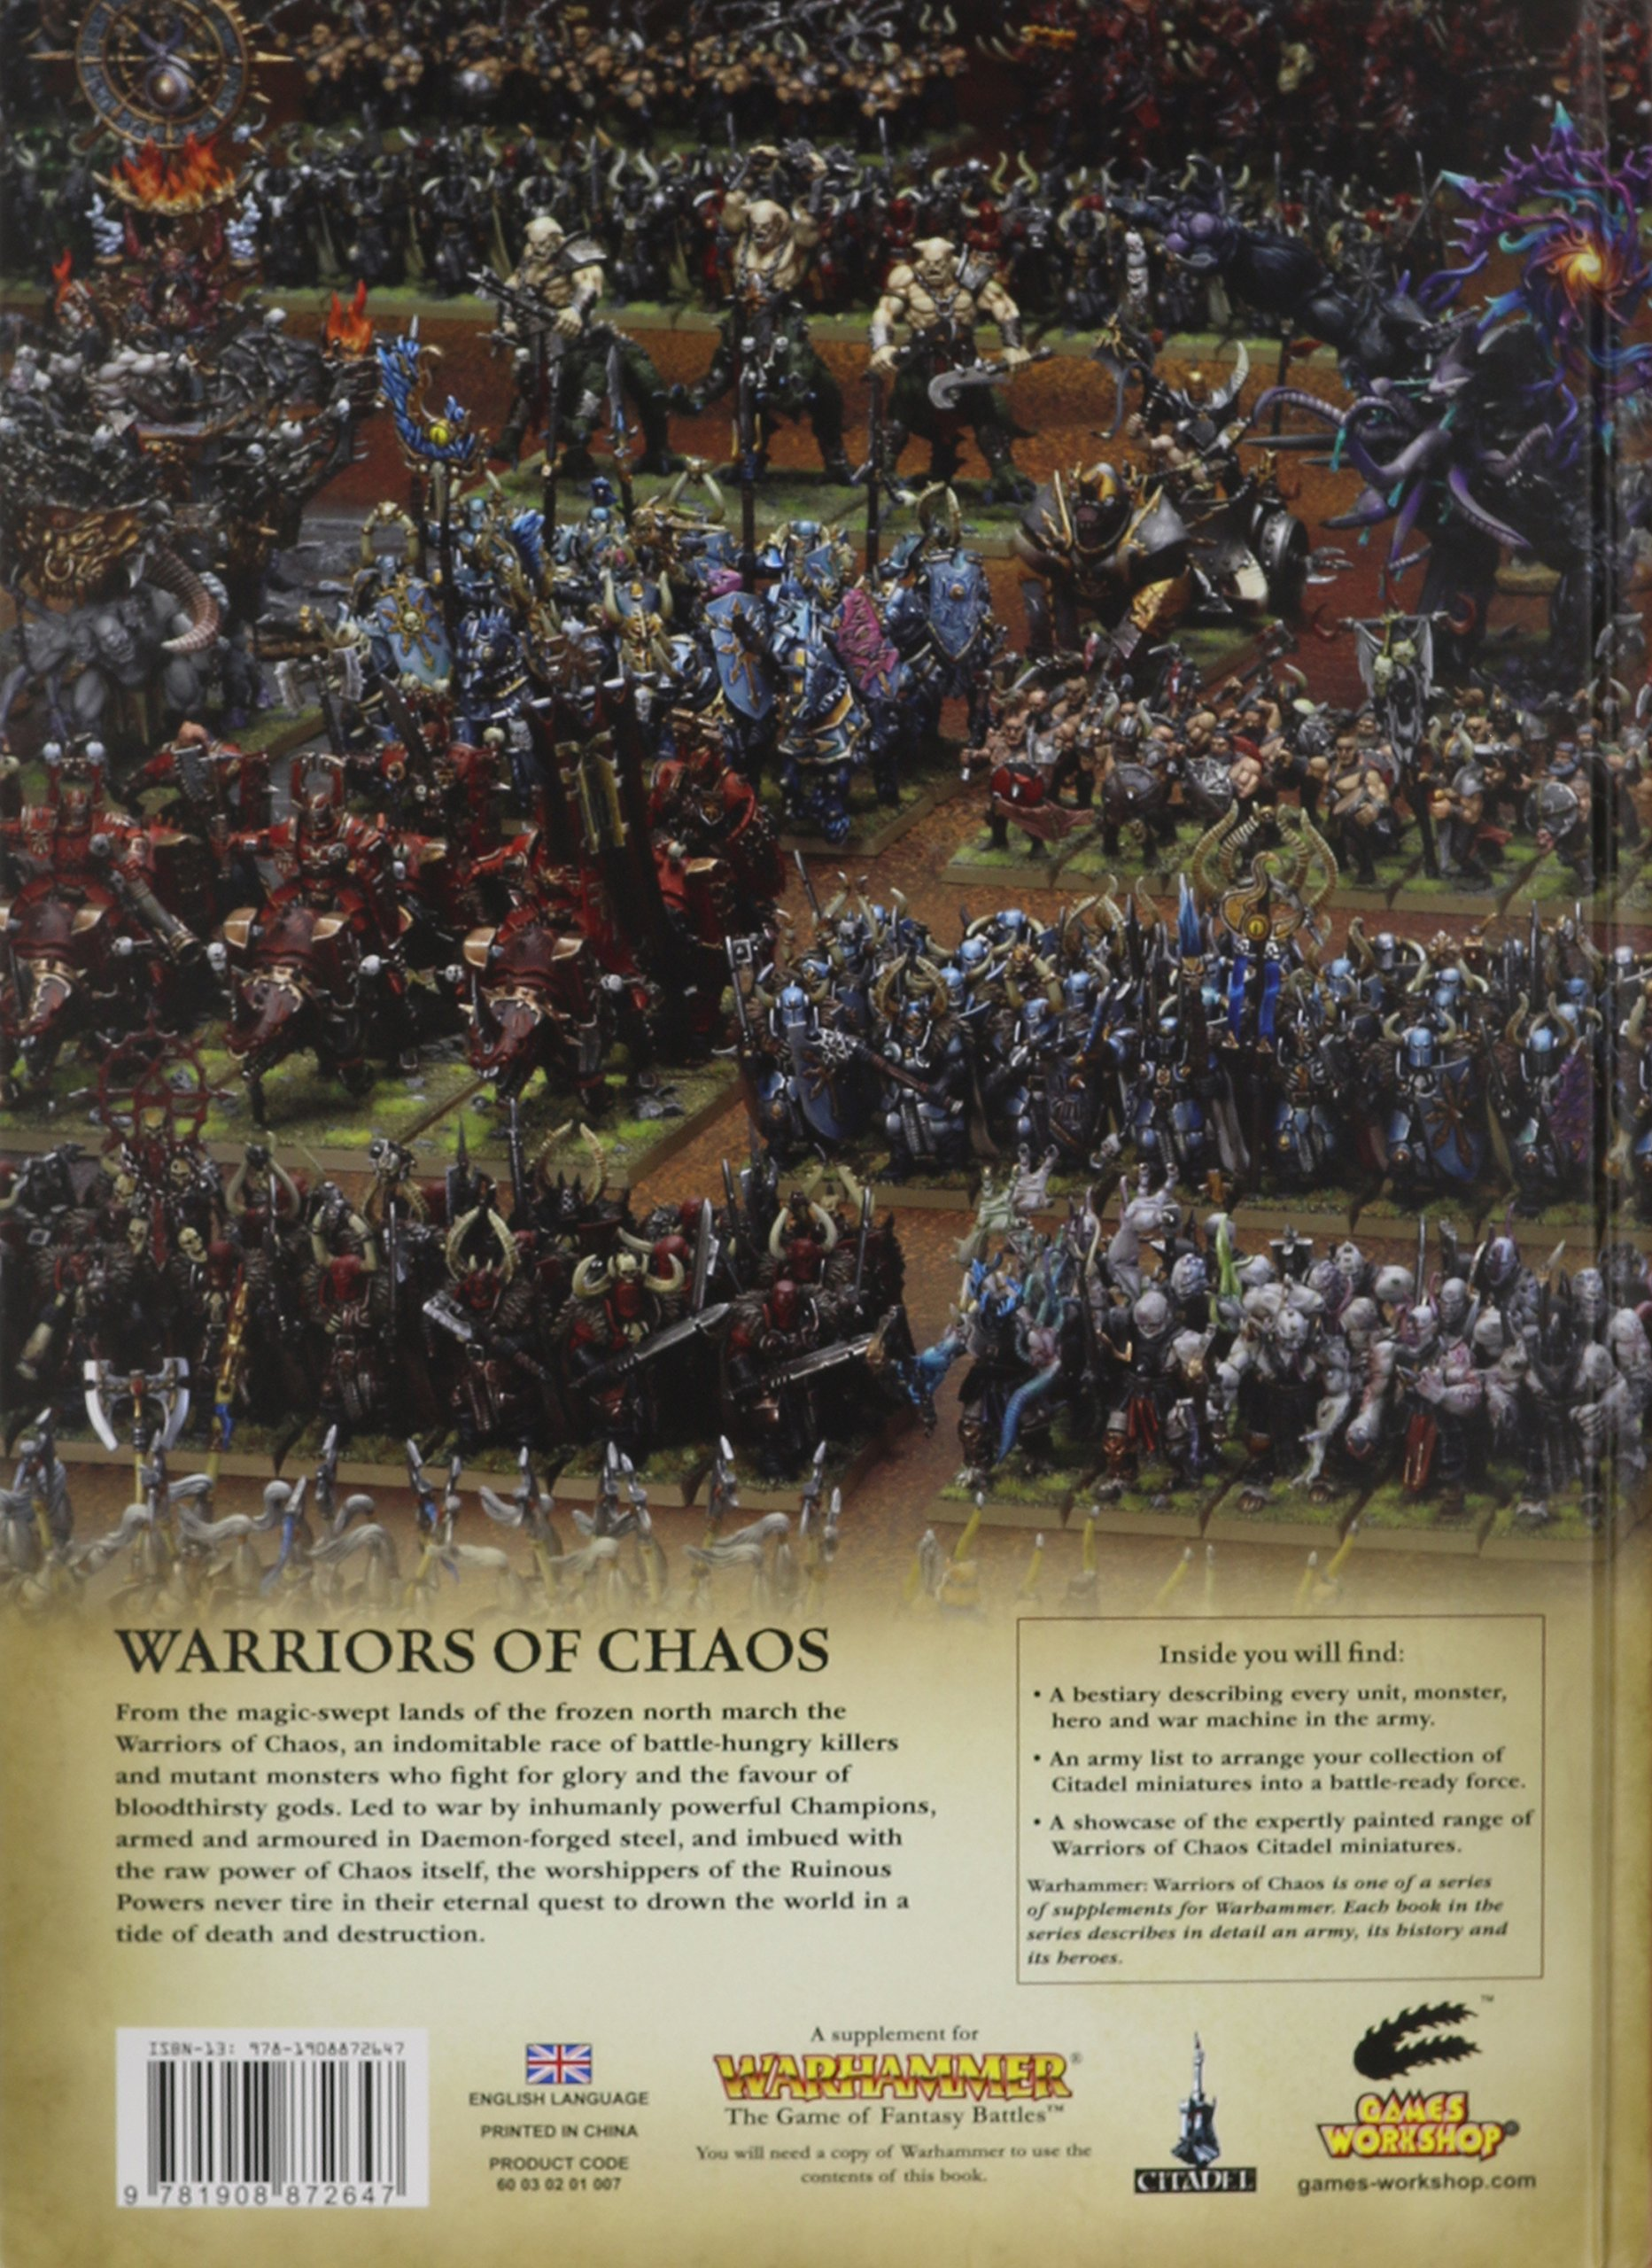 Warriors Of Chaos Games Workshop 9781908872647 Amazon Com Books